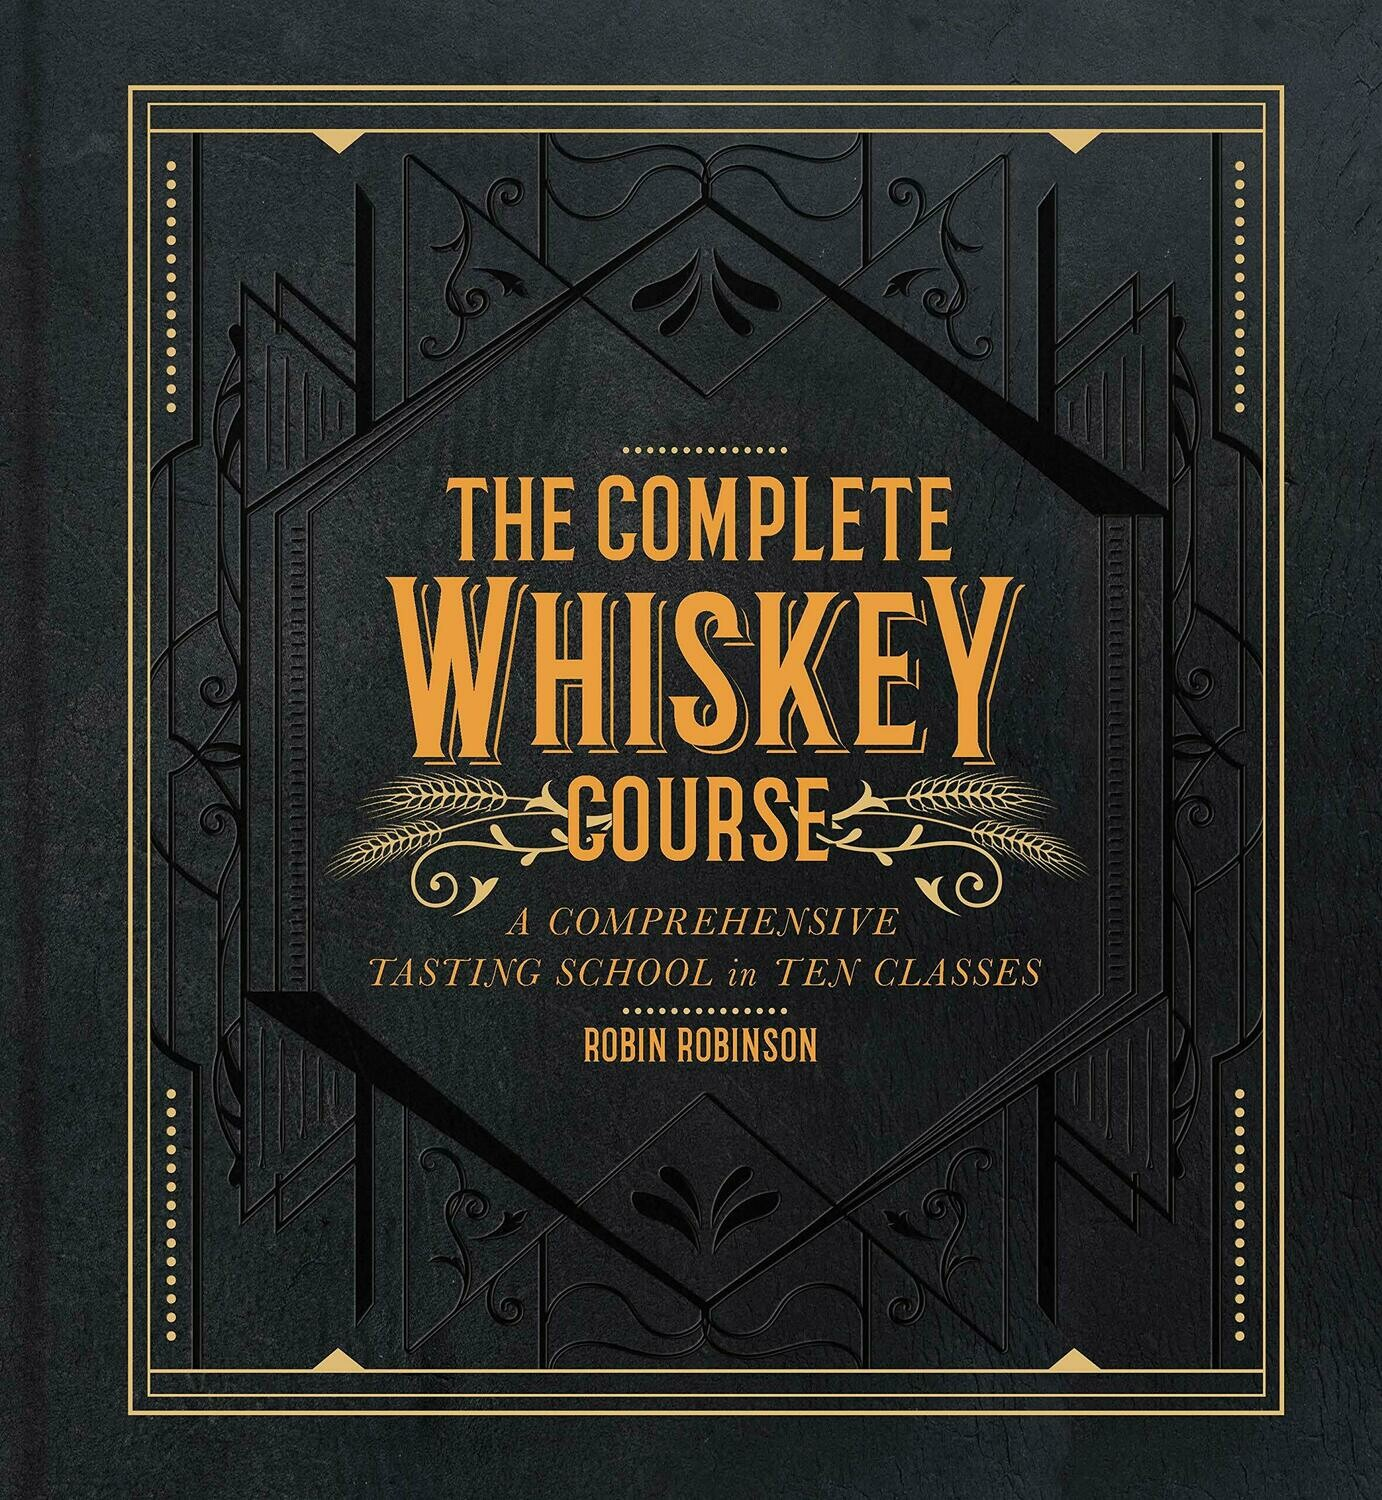 Complete Whiskey Course